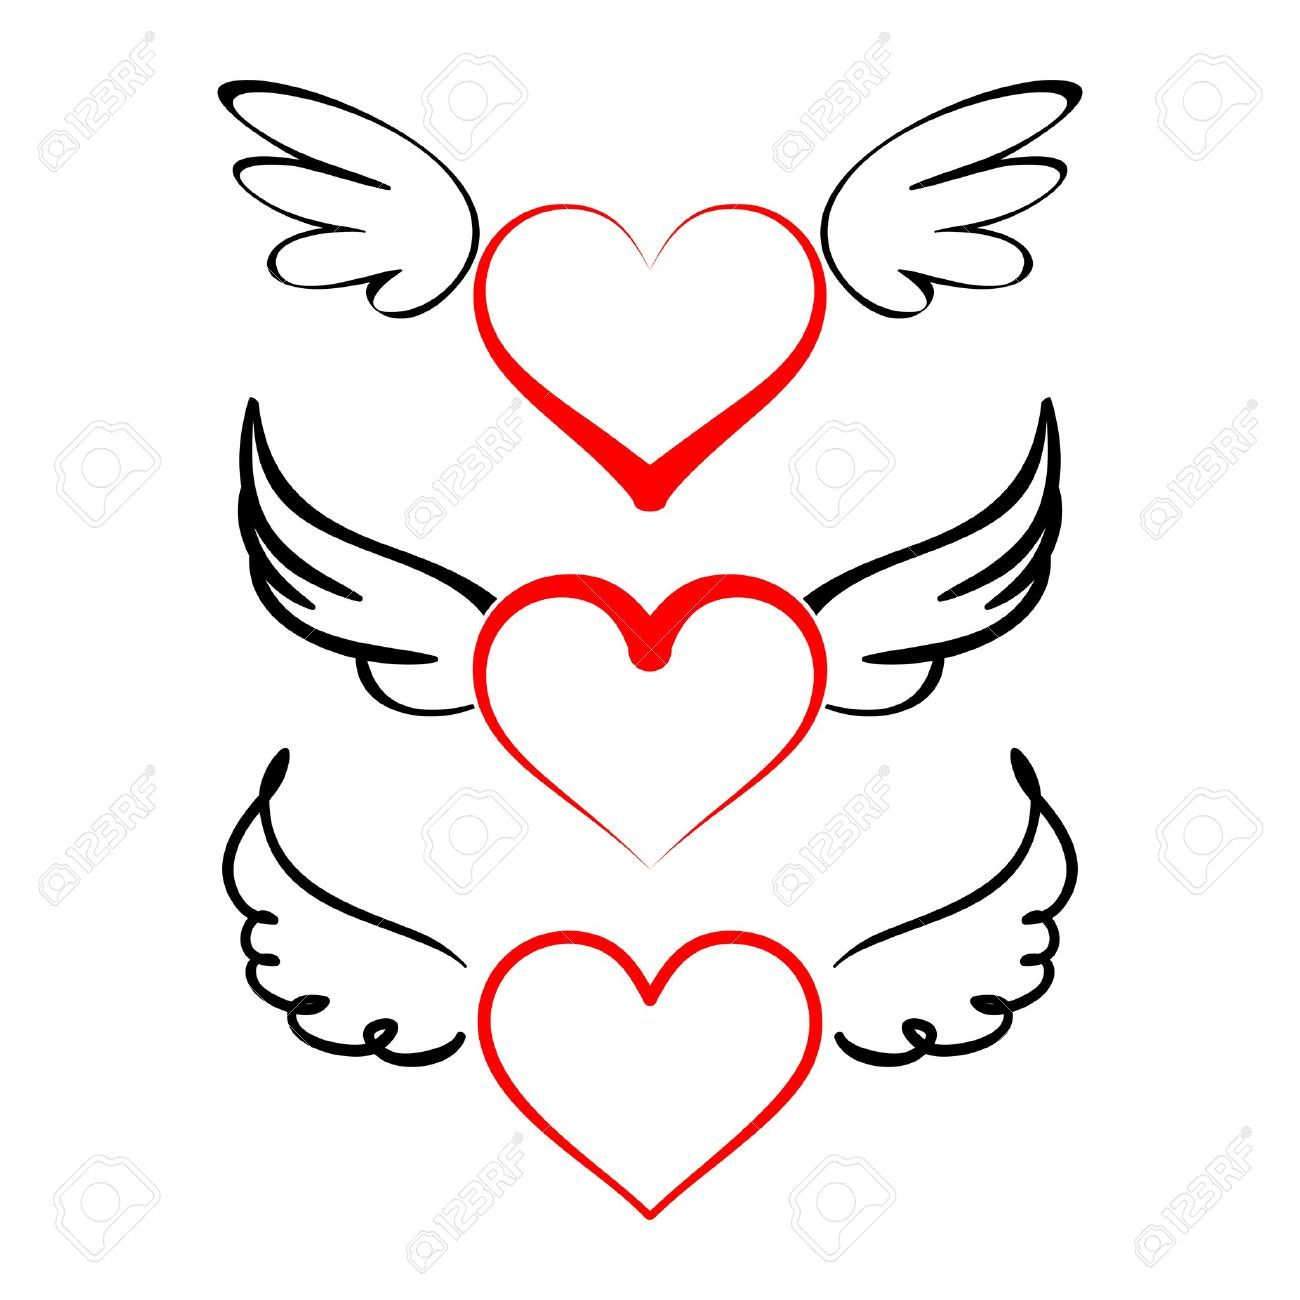 1300x1300 Stock Vector Tattoos Heart With Wings, Heart With Wings Tattoo